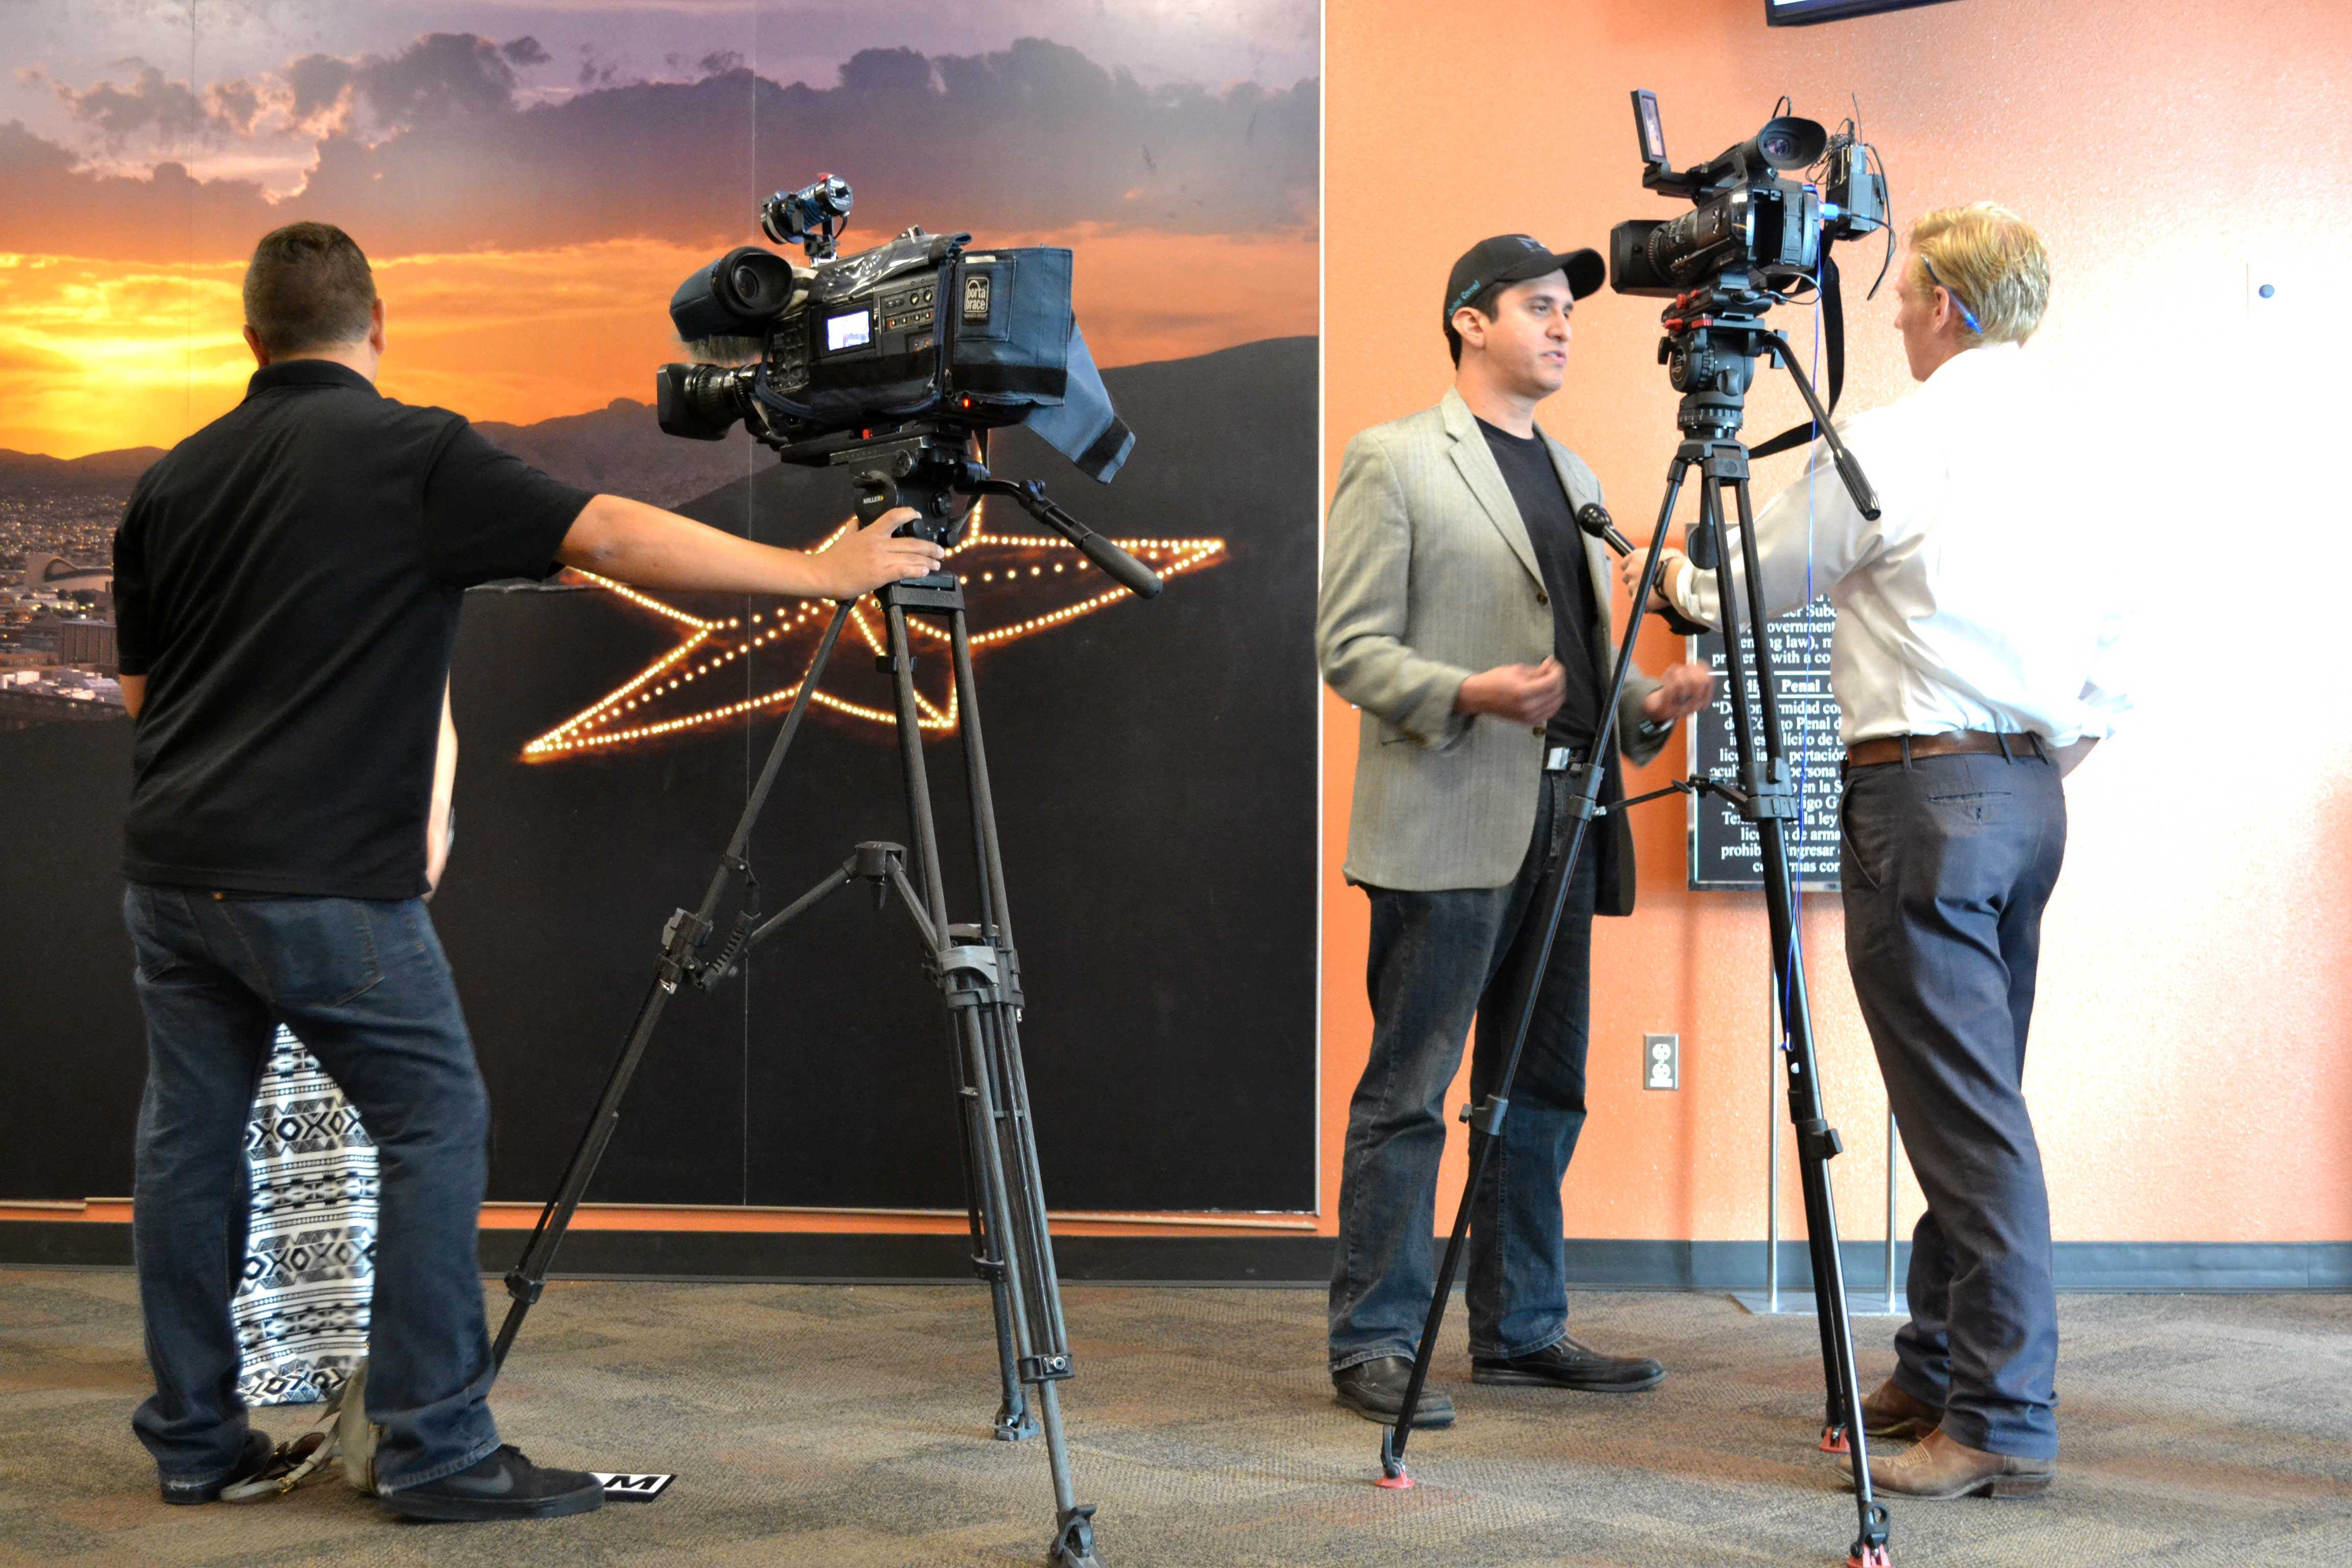 Filmmakers in El Paso see the economic growth from film productions when filming in other cities and want to bring that to the Sun City.